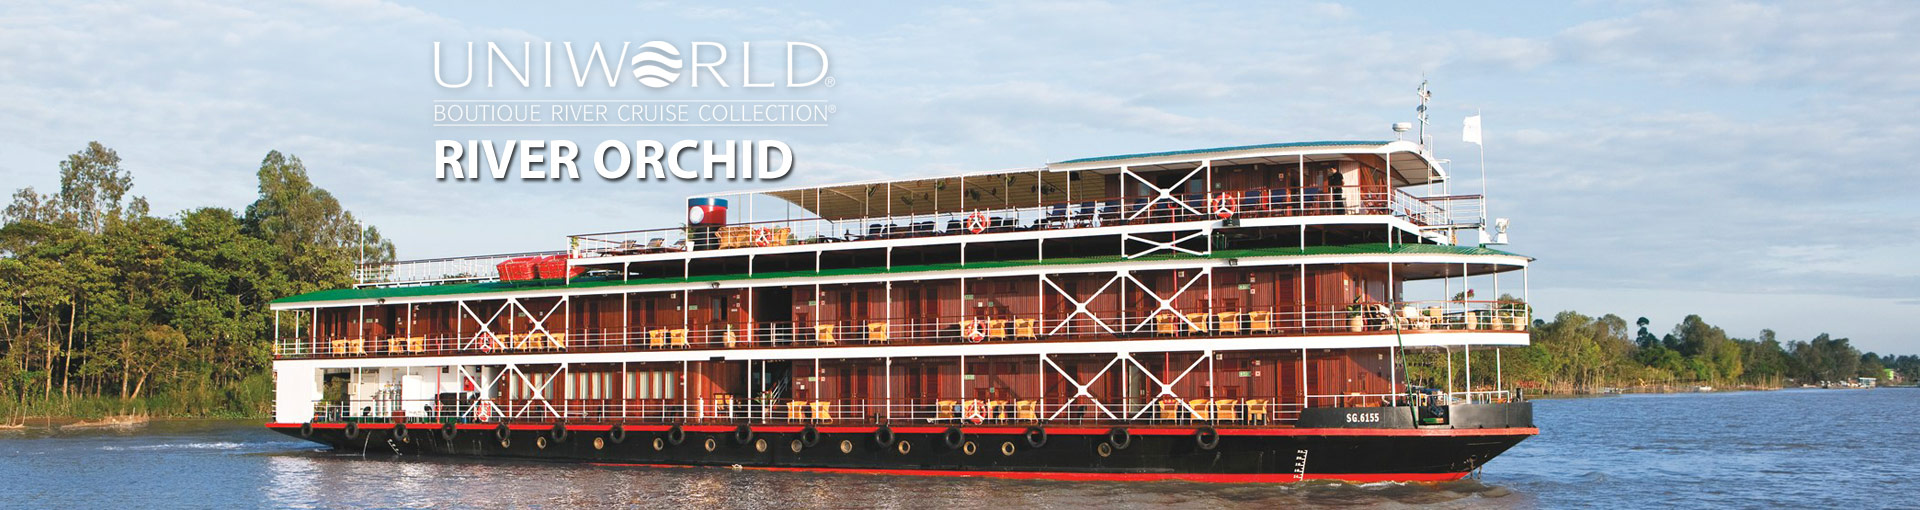 Uniworld River Cruises River Orchid river ship